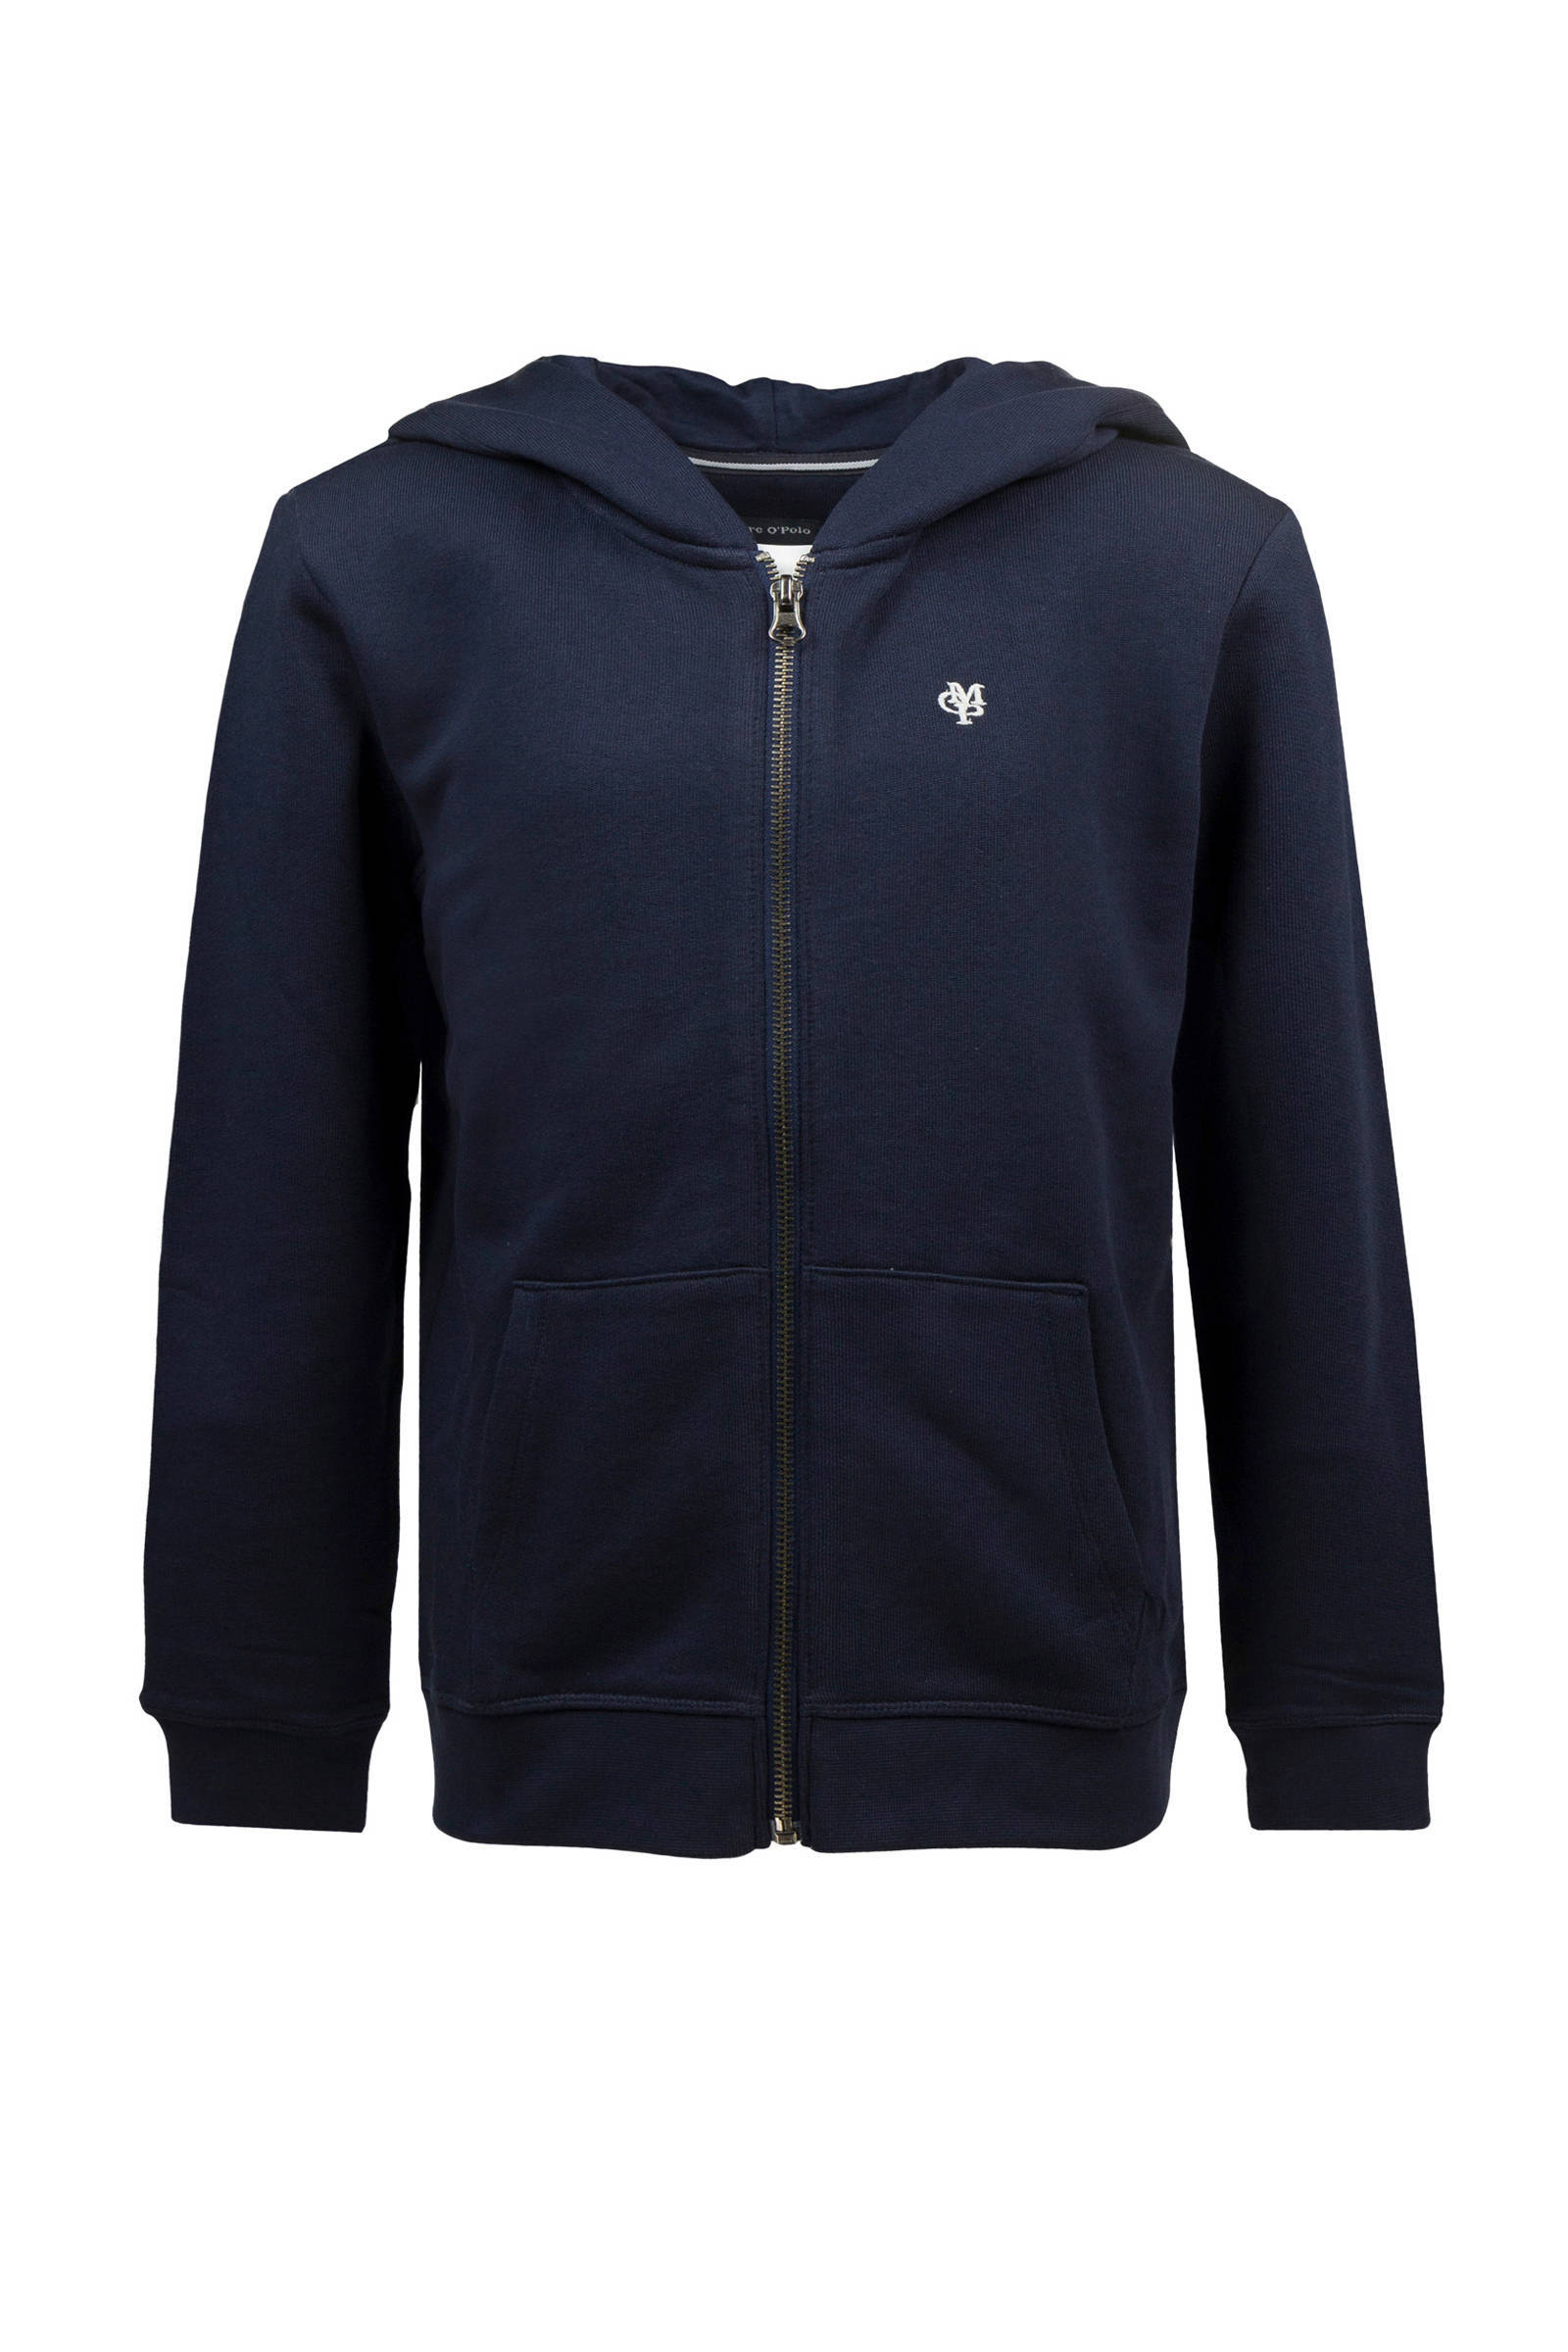 Marc O'Polo hooded sweatvest donkerblauw (jongens)